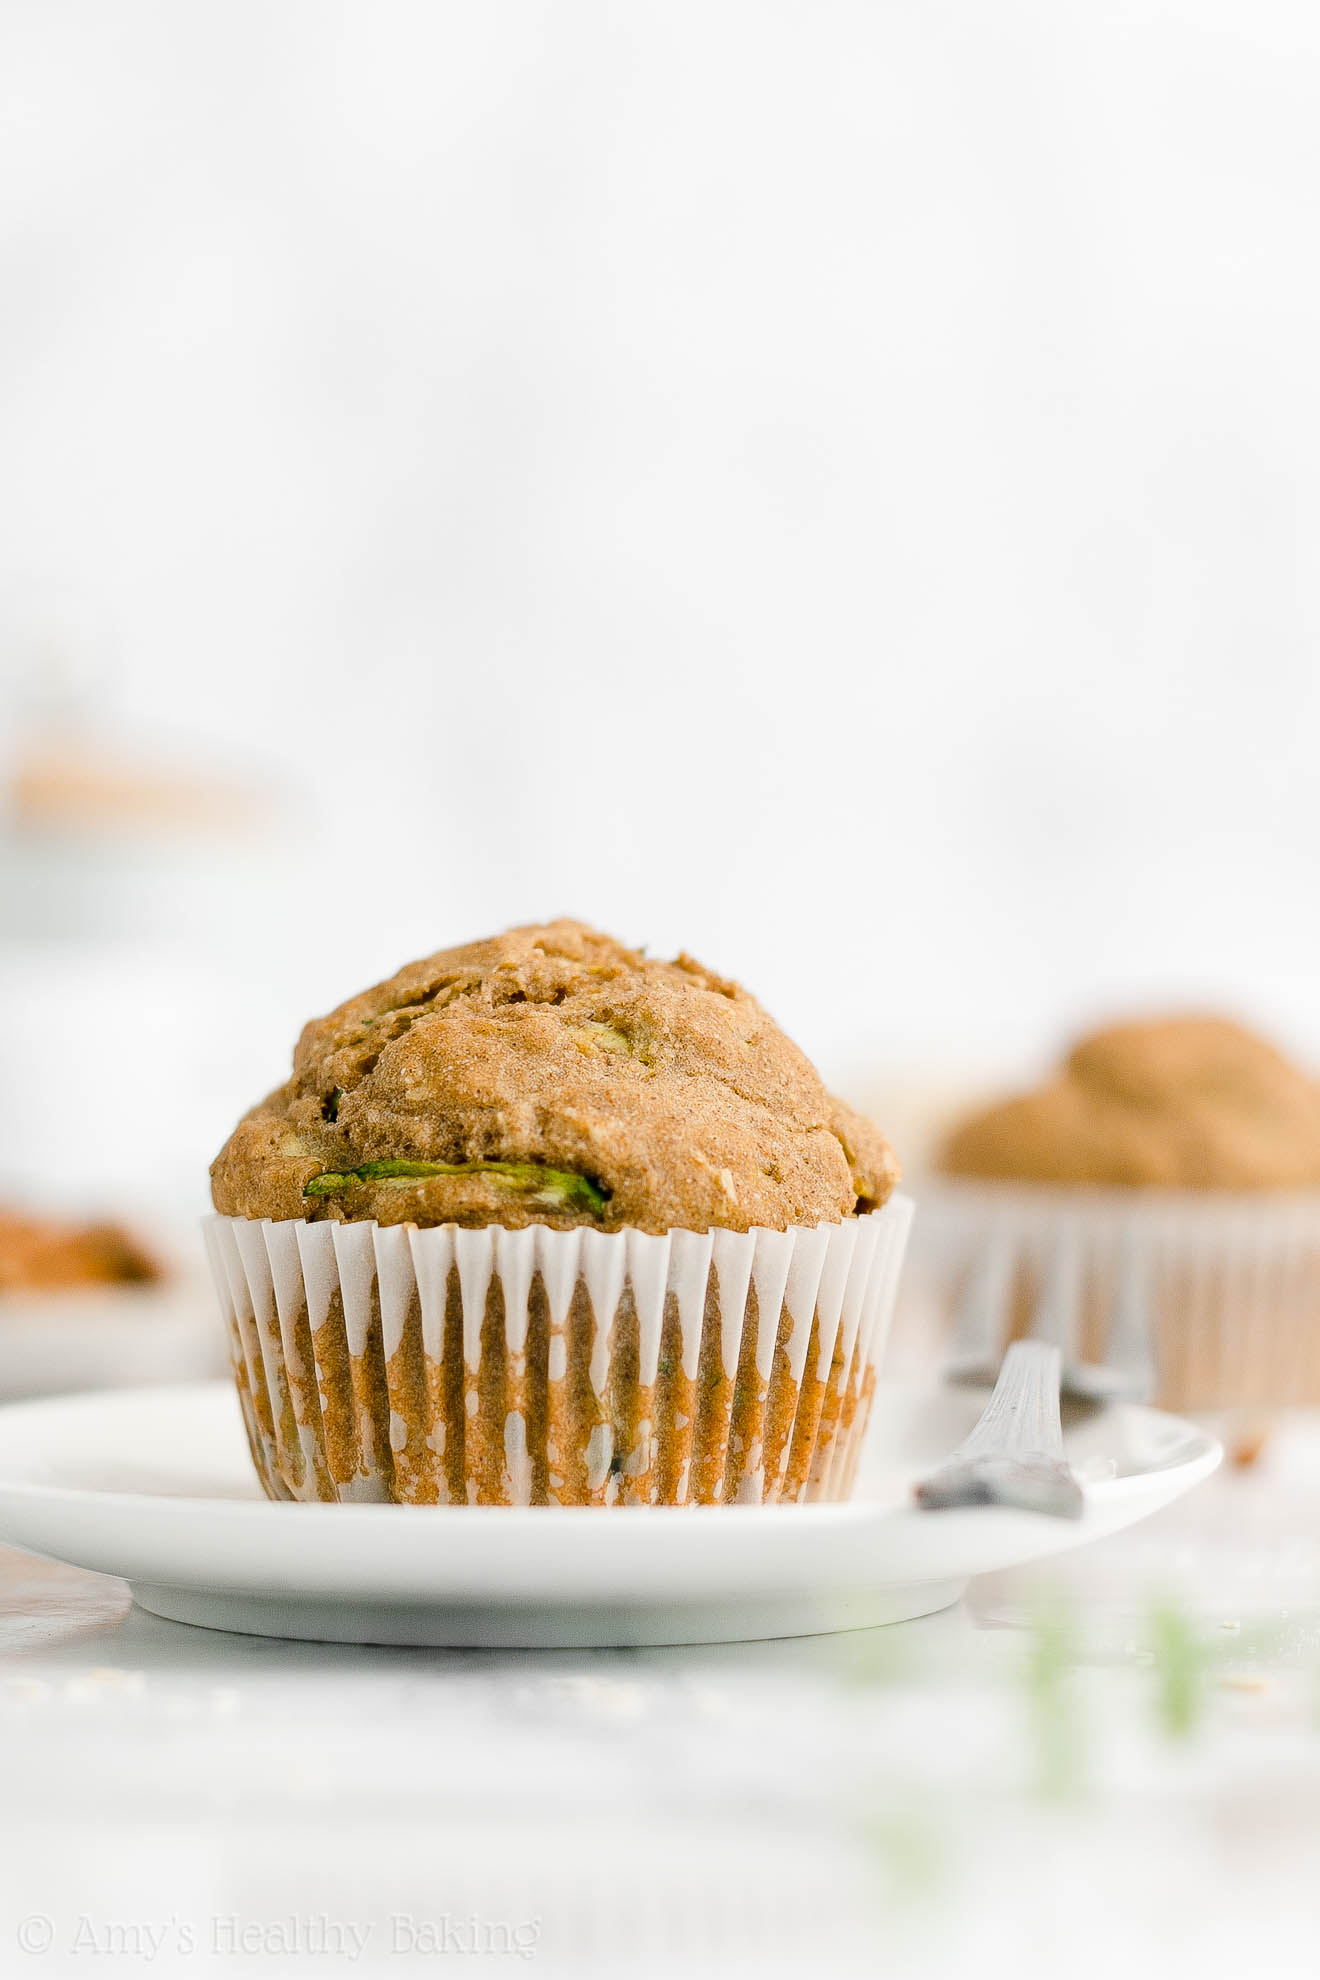 Best Easy Healthy Whole Wheat No Sugar Greek Yogurt Zucchini Oatmeal Muffins